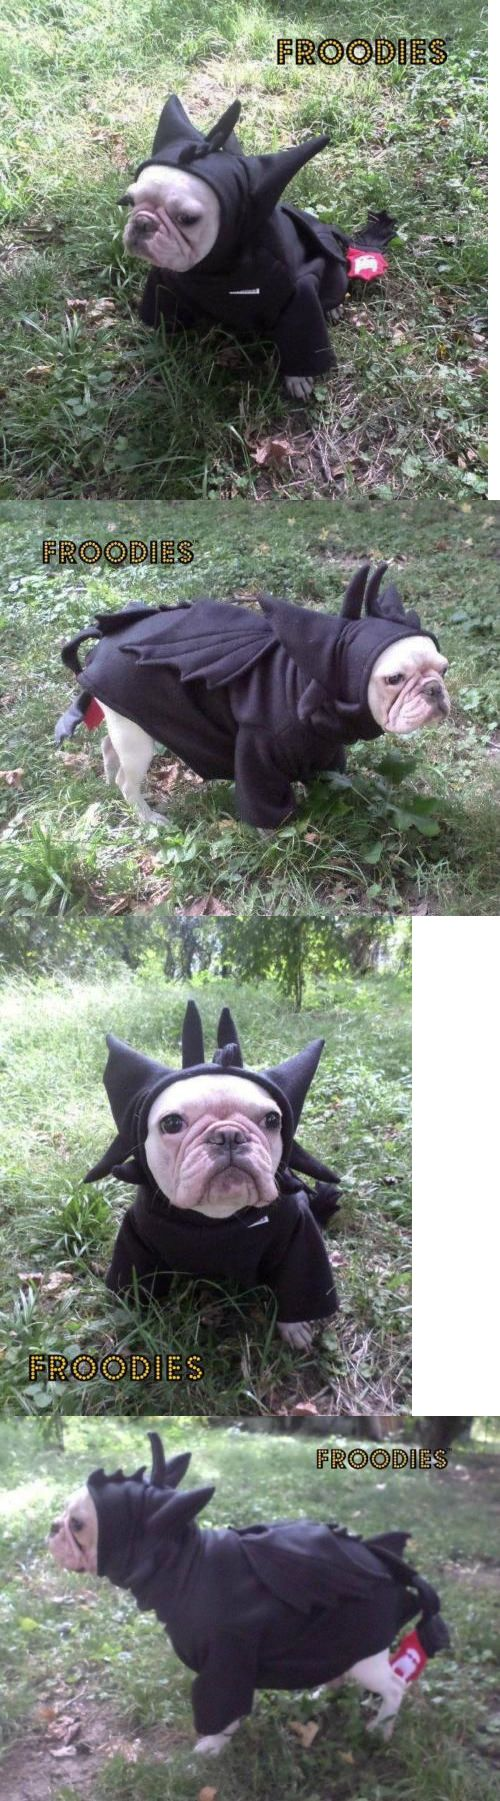 Costumes 52352: French Bulldog Boston Pug Dog Froodies Hoodies Cosplay Costume Toothless Dragon BUY IT NOW ONLY: $49.99